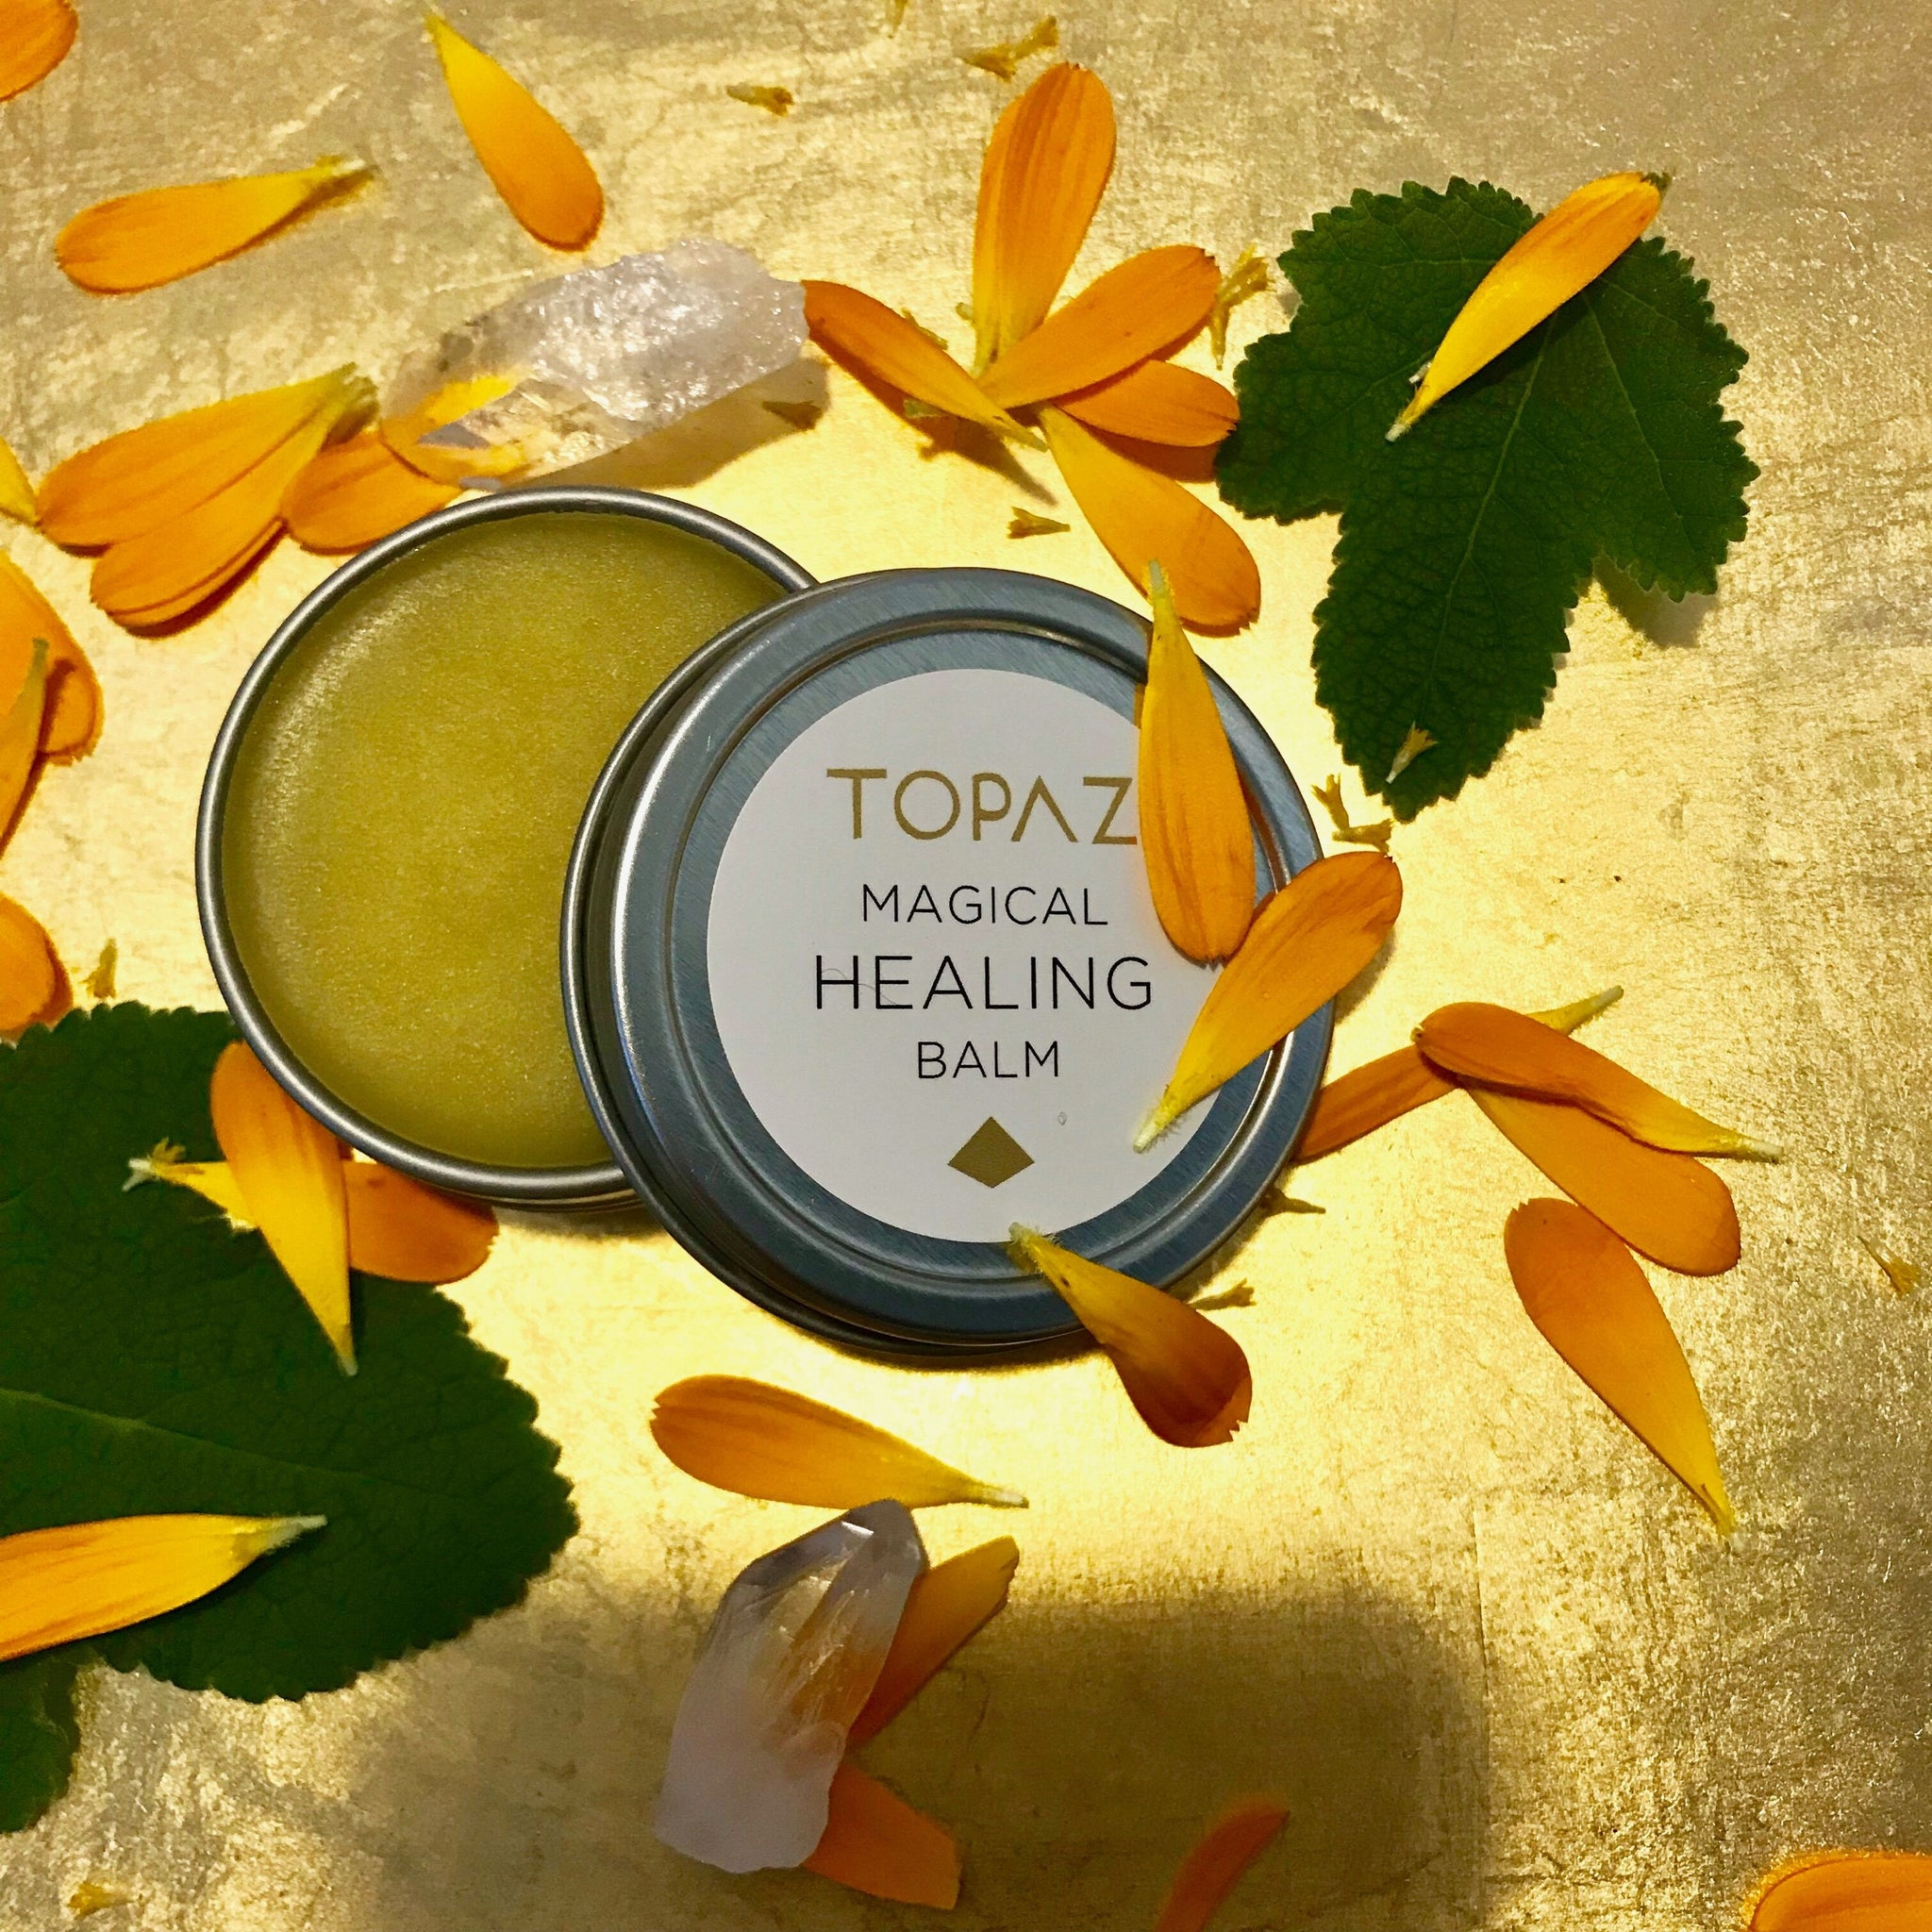 Magical Healing Balm